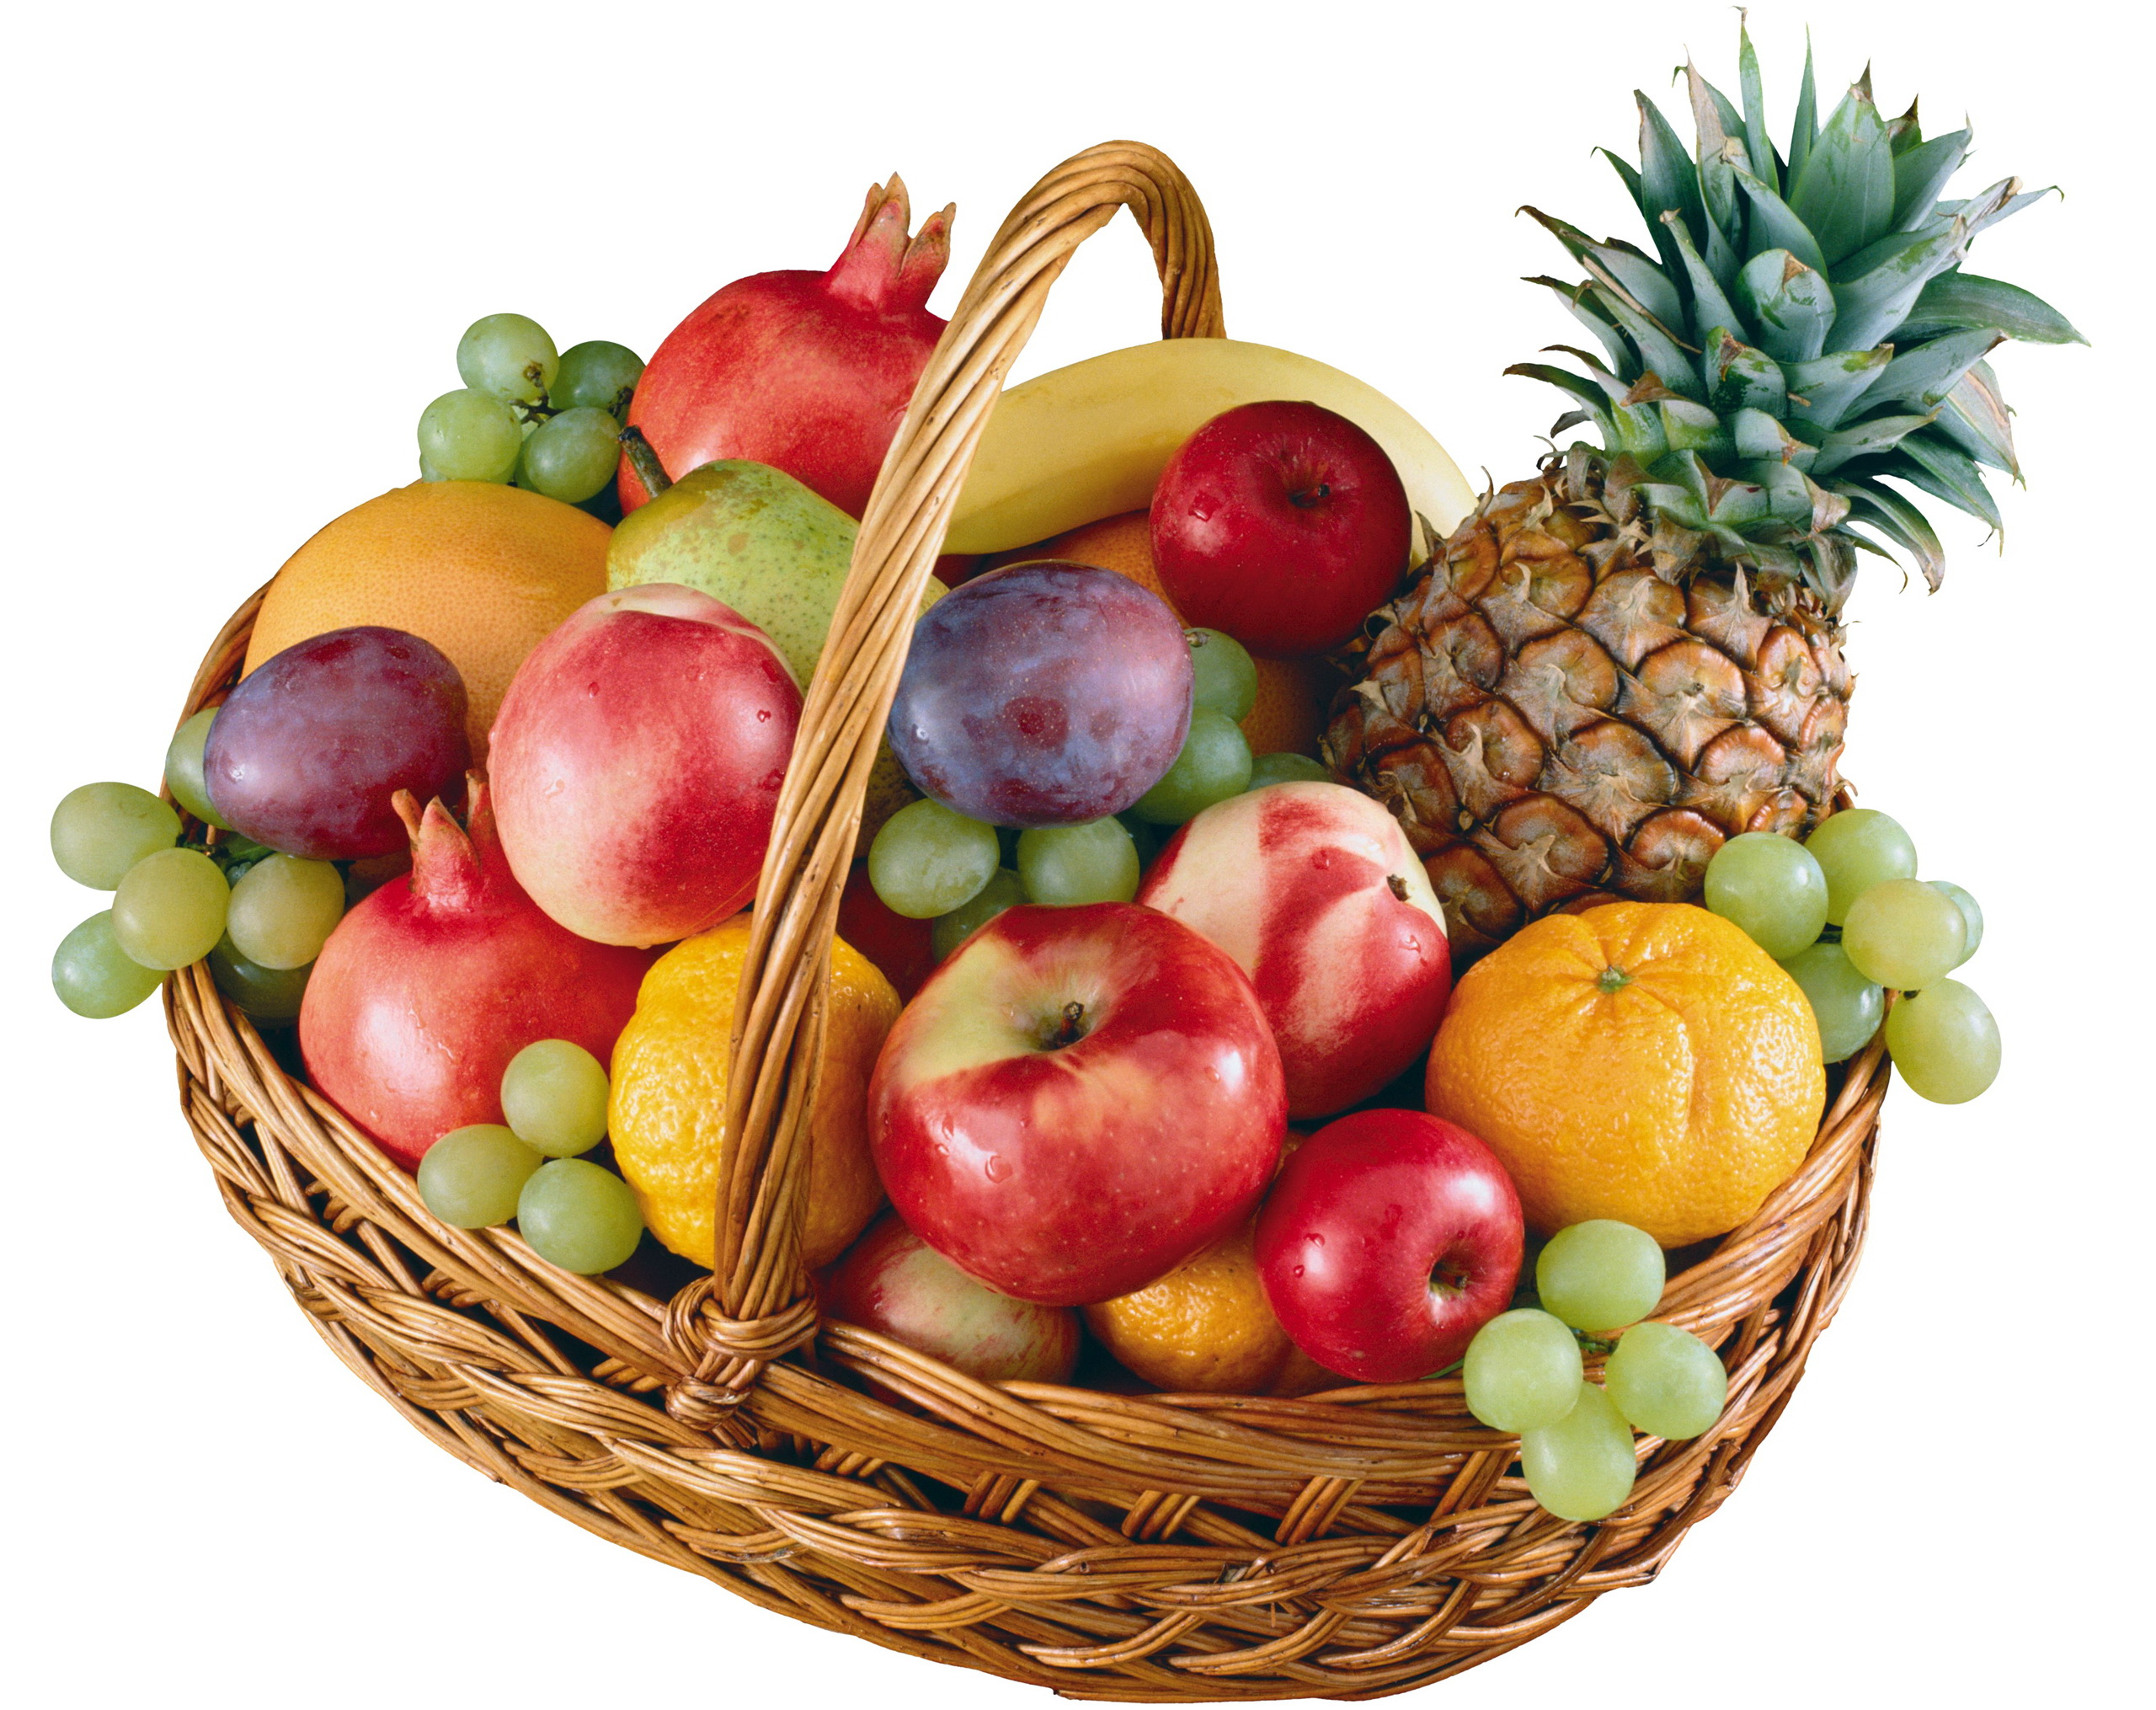 Fruit Baskets Fuit Basket Full Hd Wallpaper And Background Image